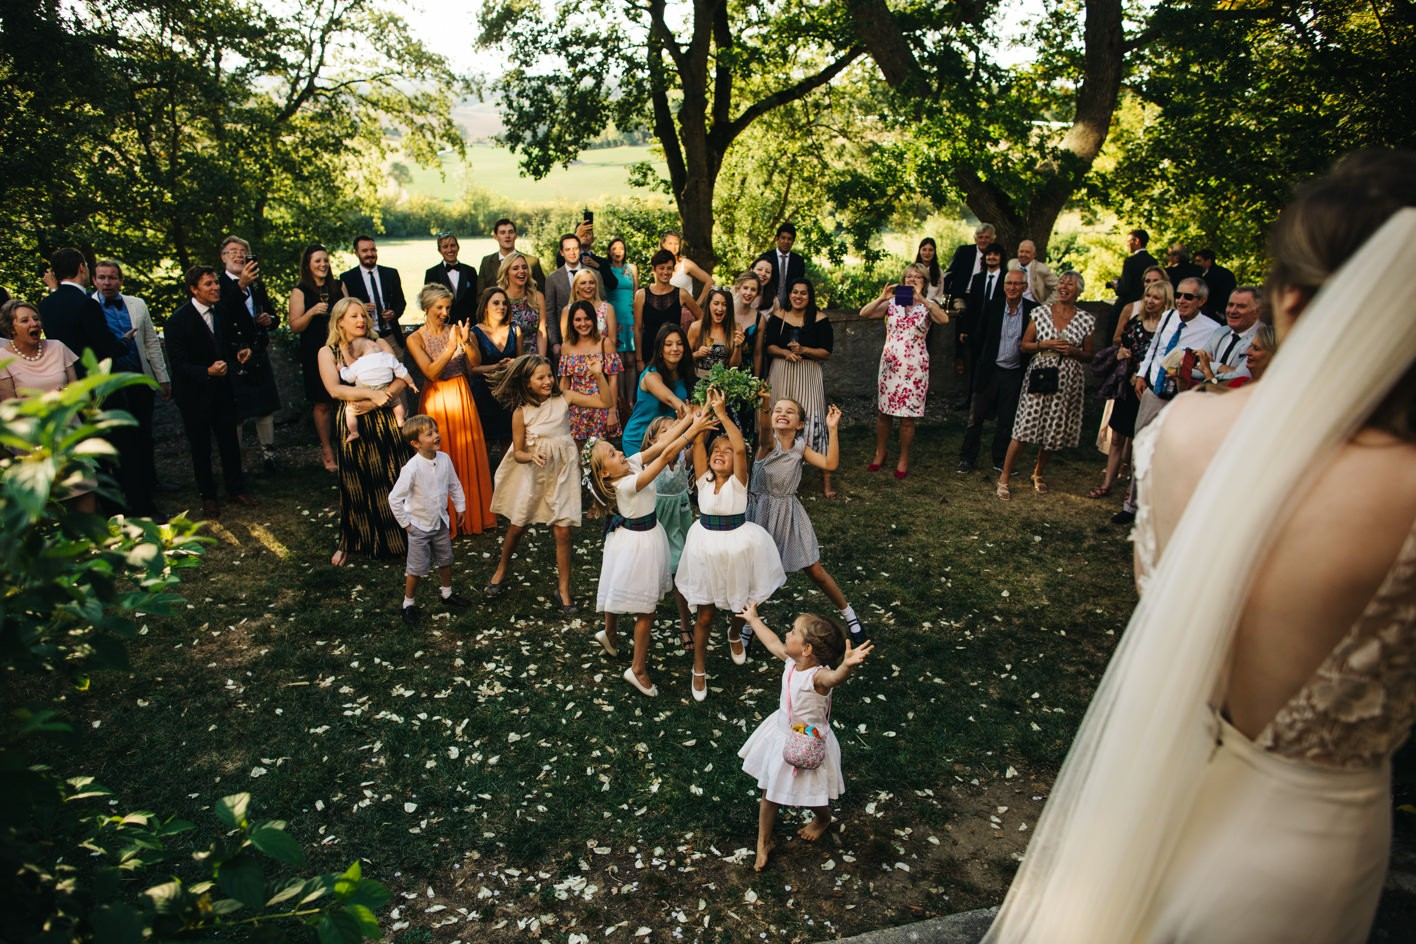 guests catch bouquet at chateau wedding near toulouse